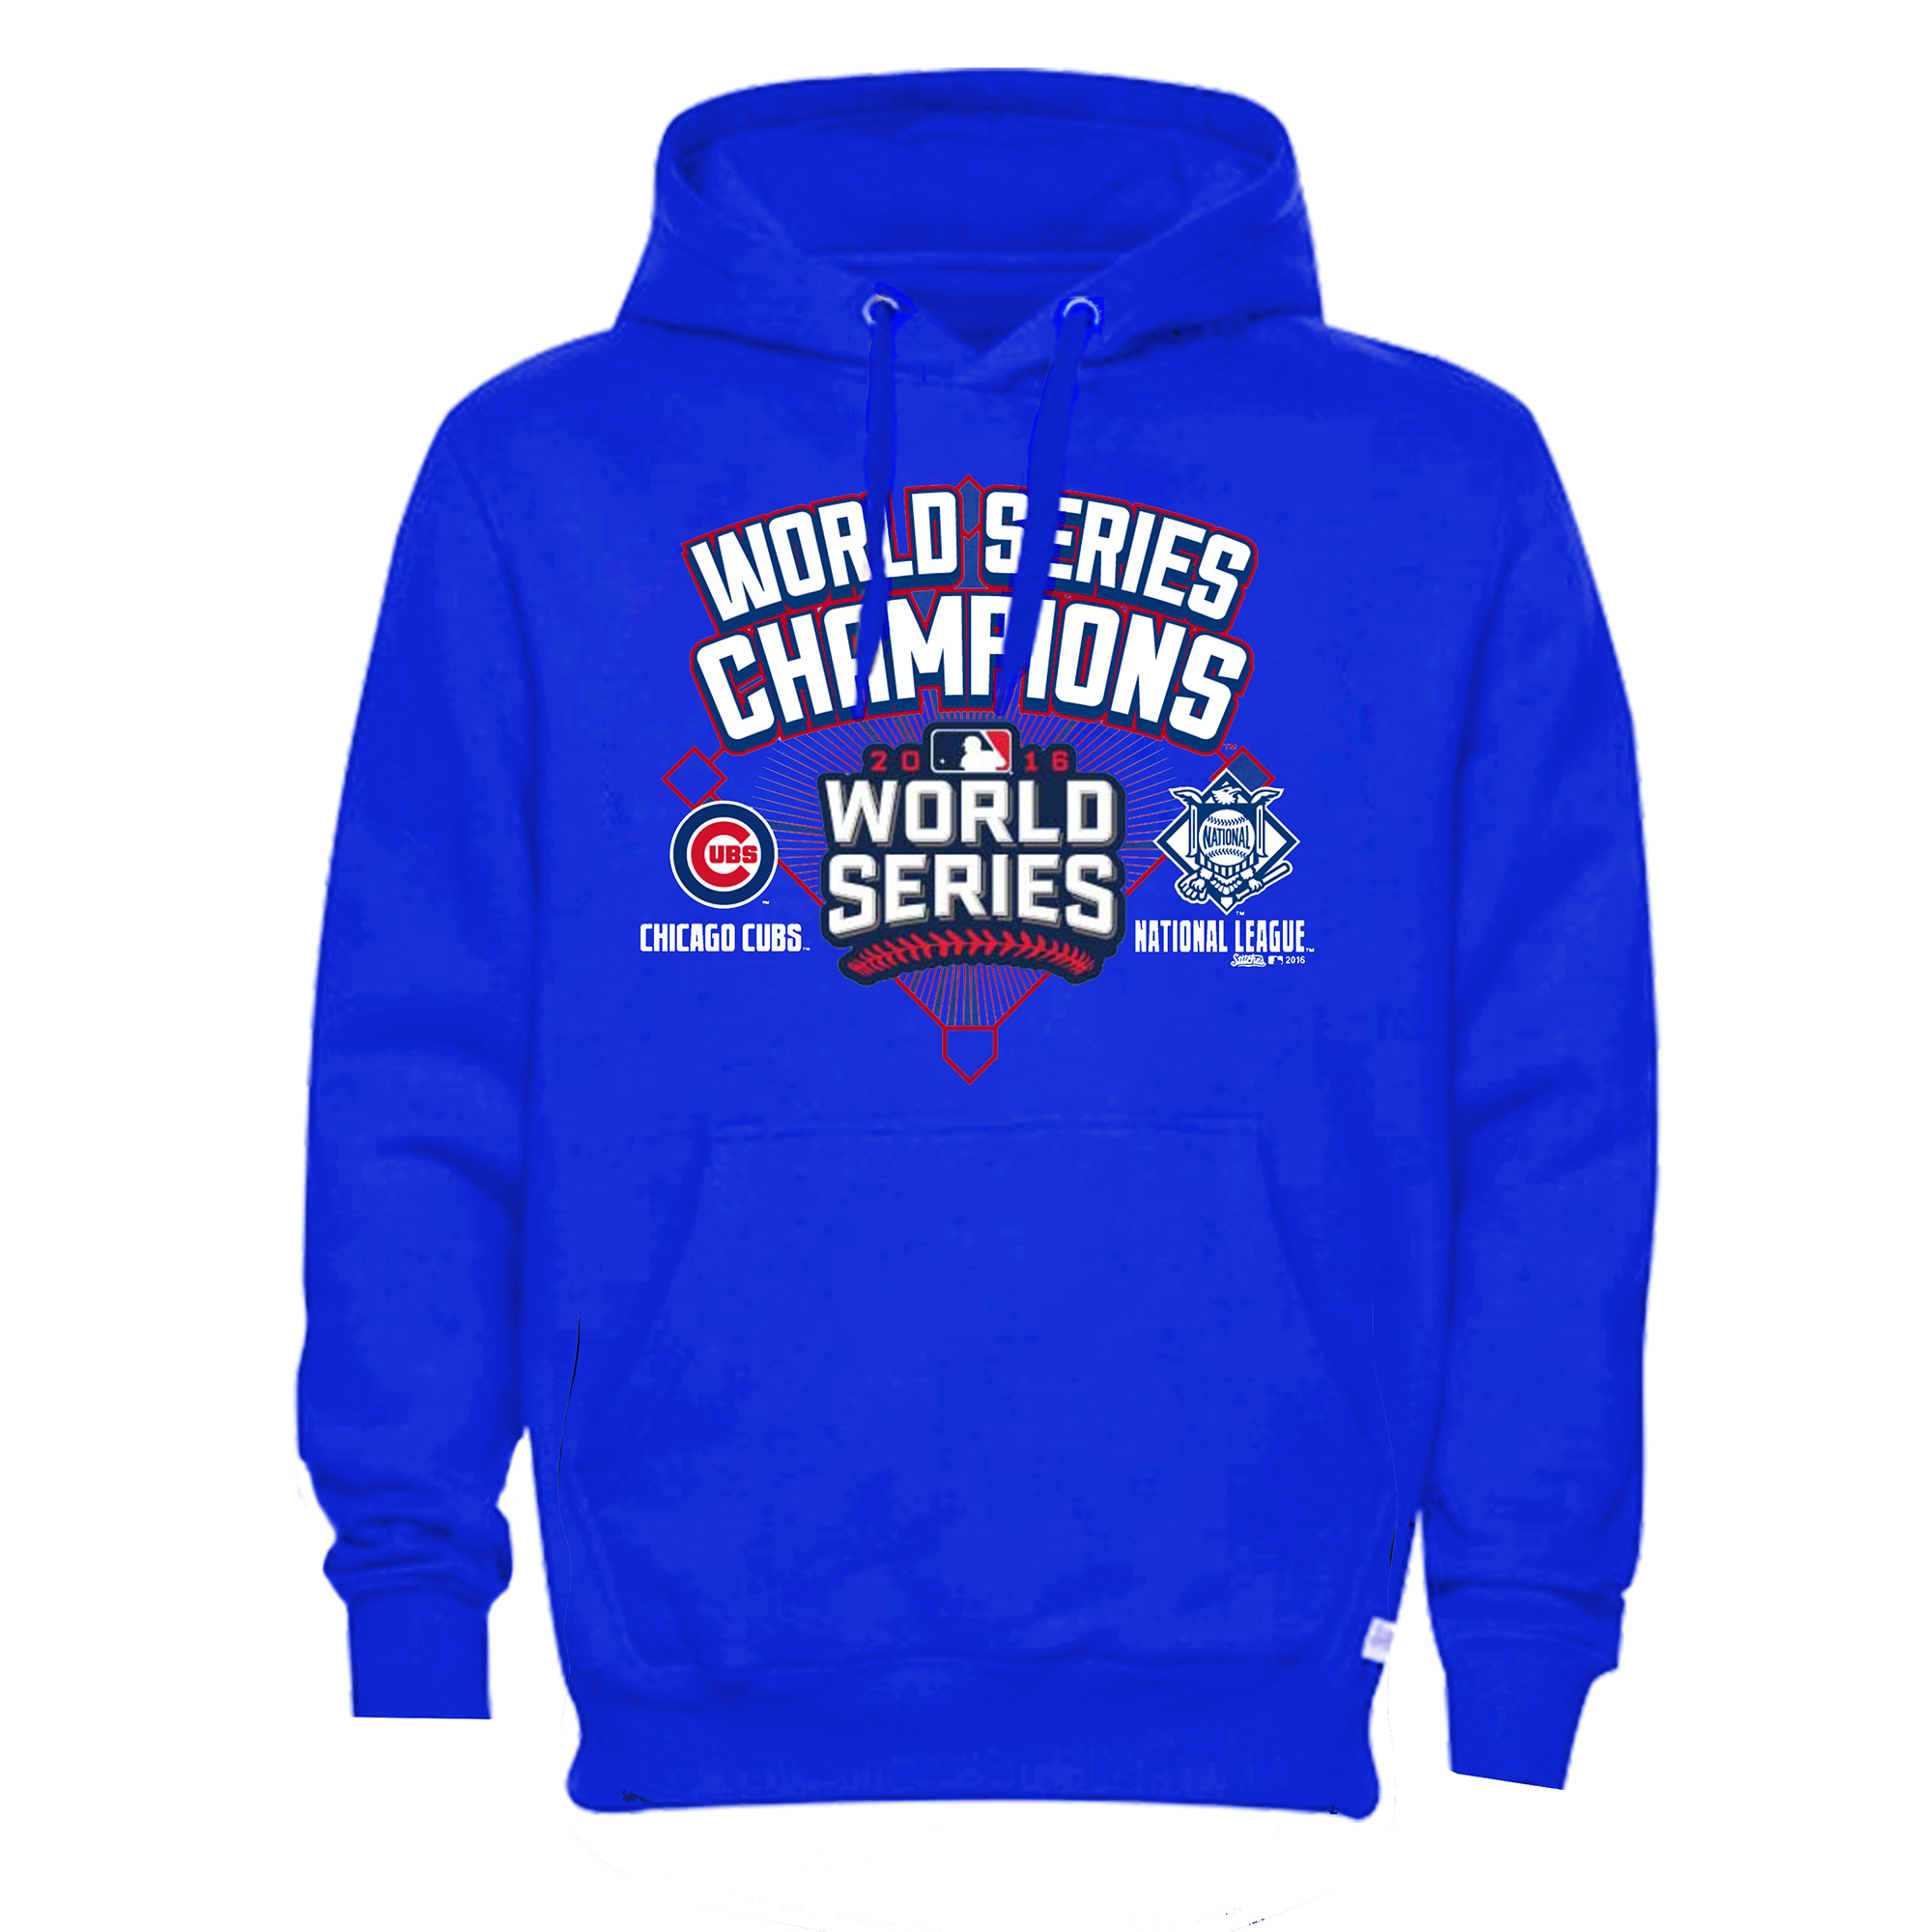 Chicago Cubs Stitches 2016 World Series Champions Diamond Pullover Hoodie - Royal